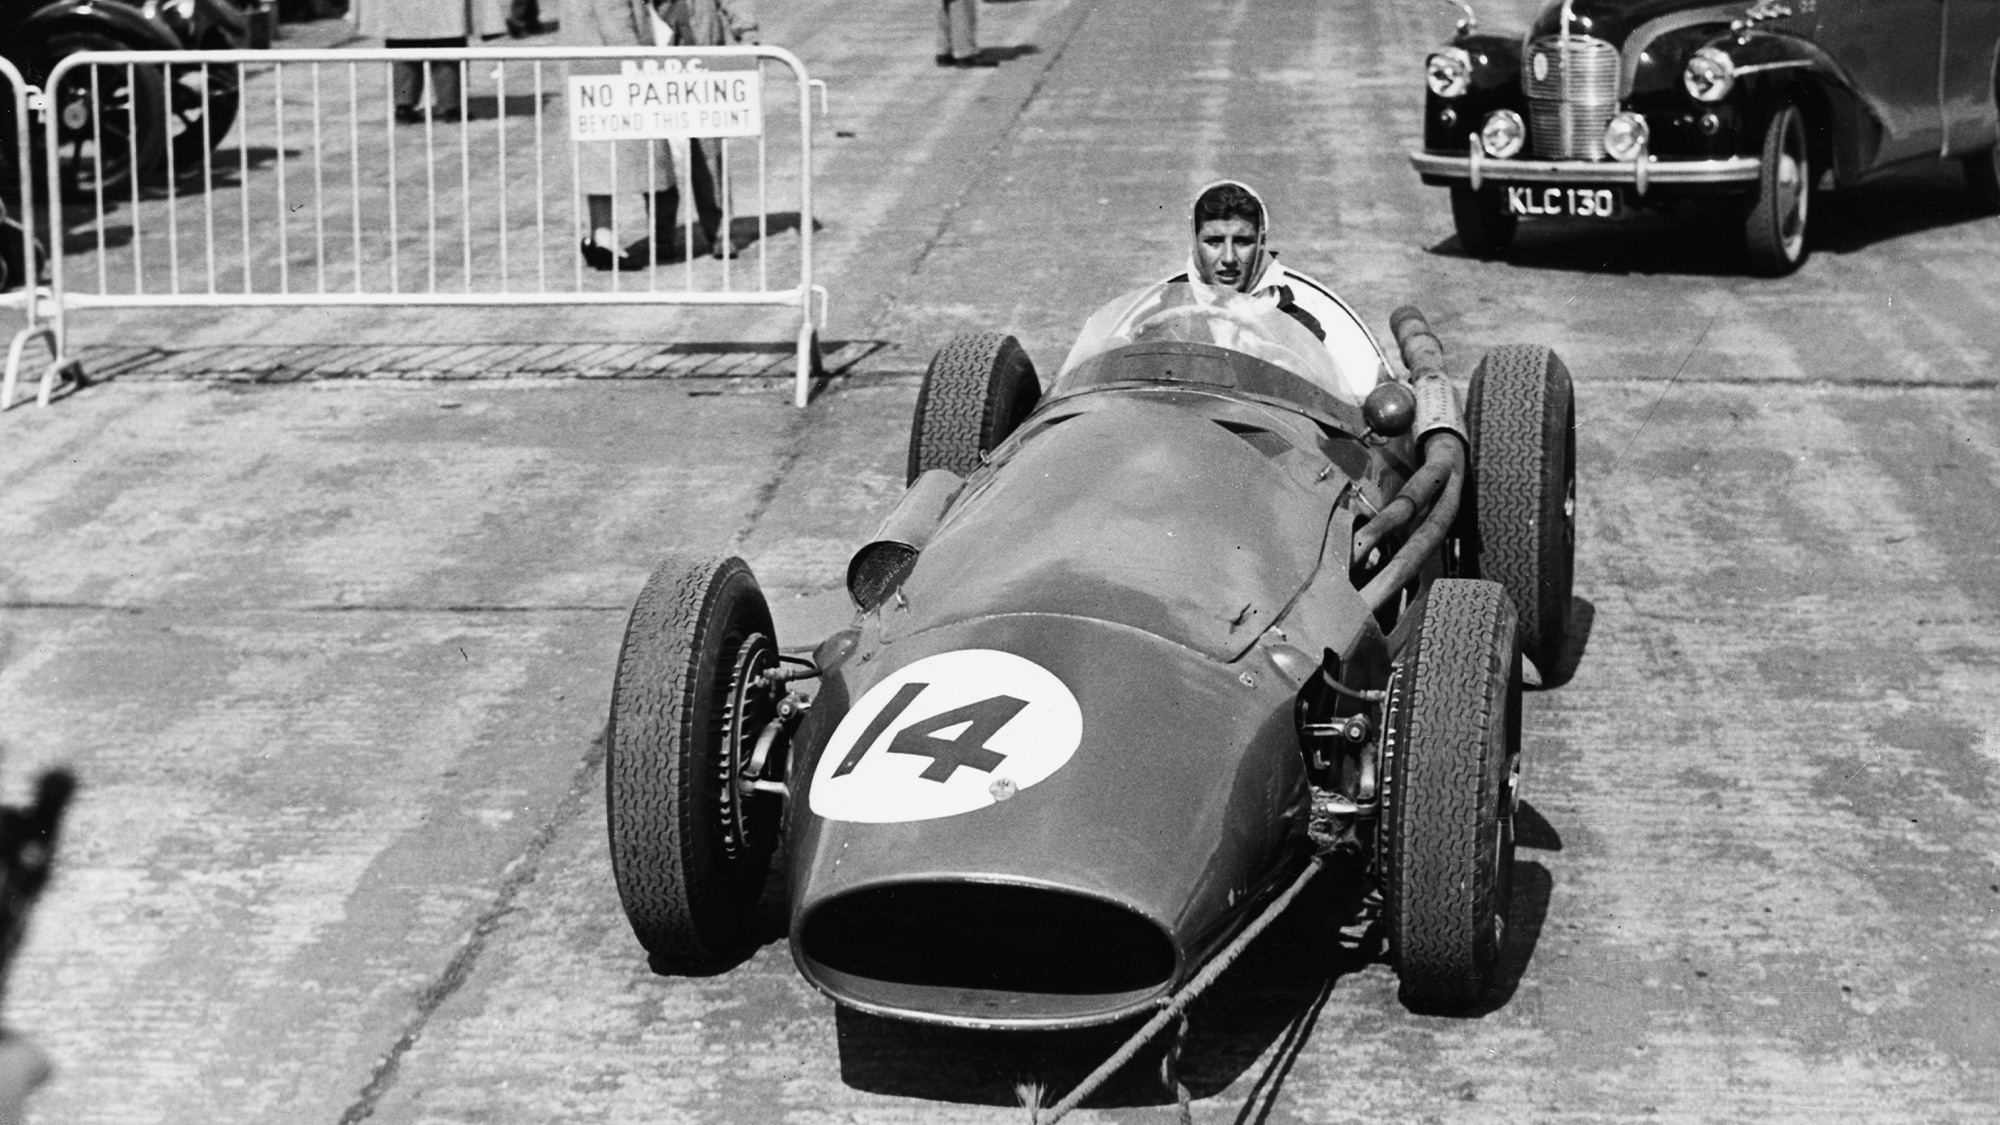 Maria Teresa de Filippis, the first female to compete in Formula One, in her Maserati at the 11th Annual International Trophy Race at Silverstone in 1959